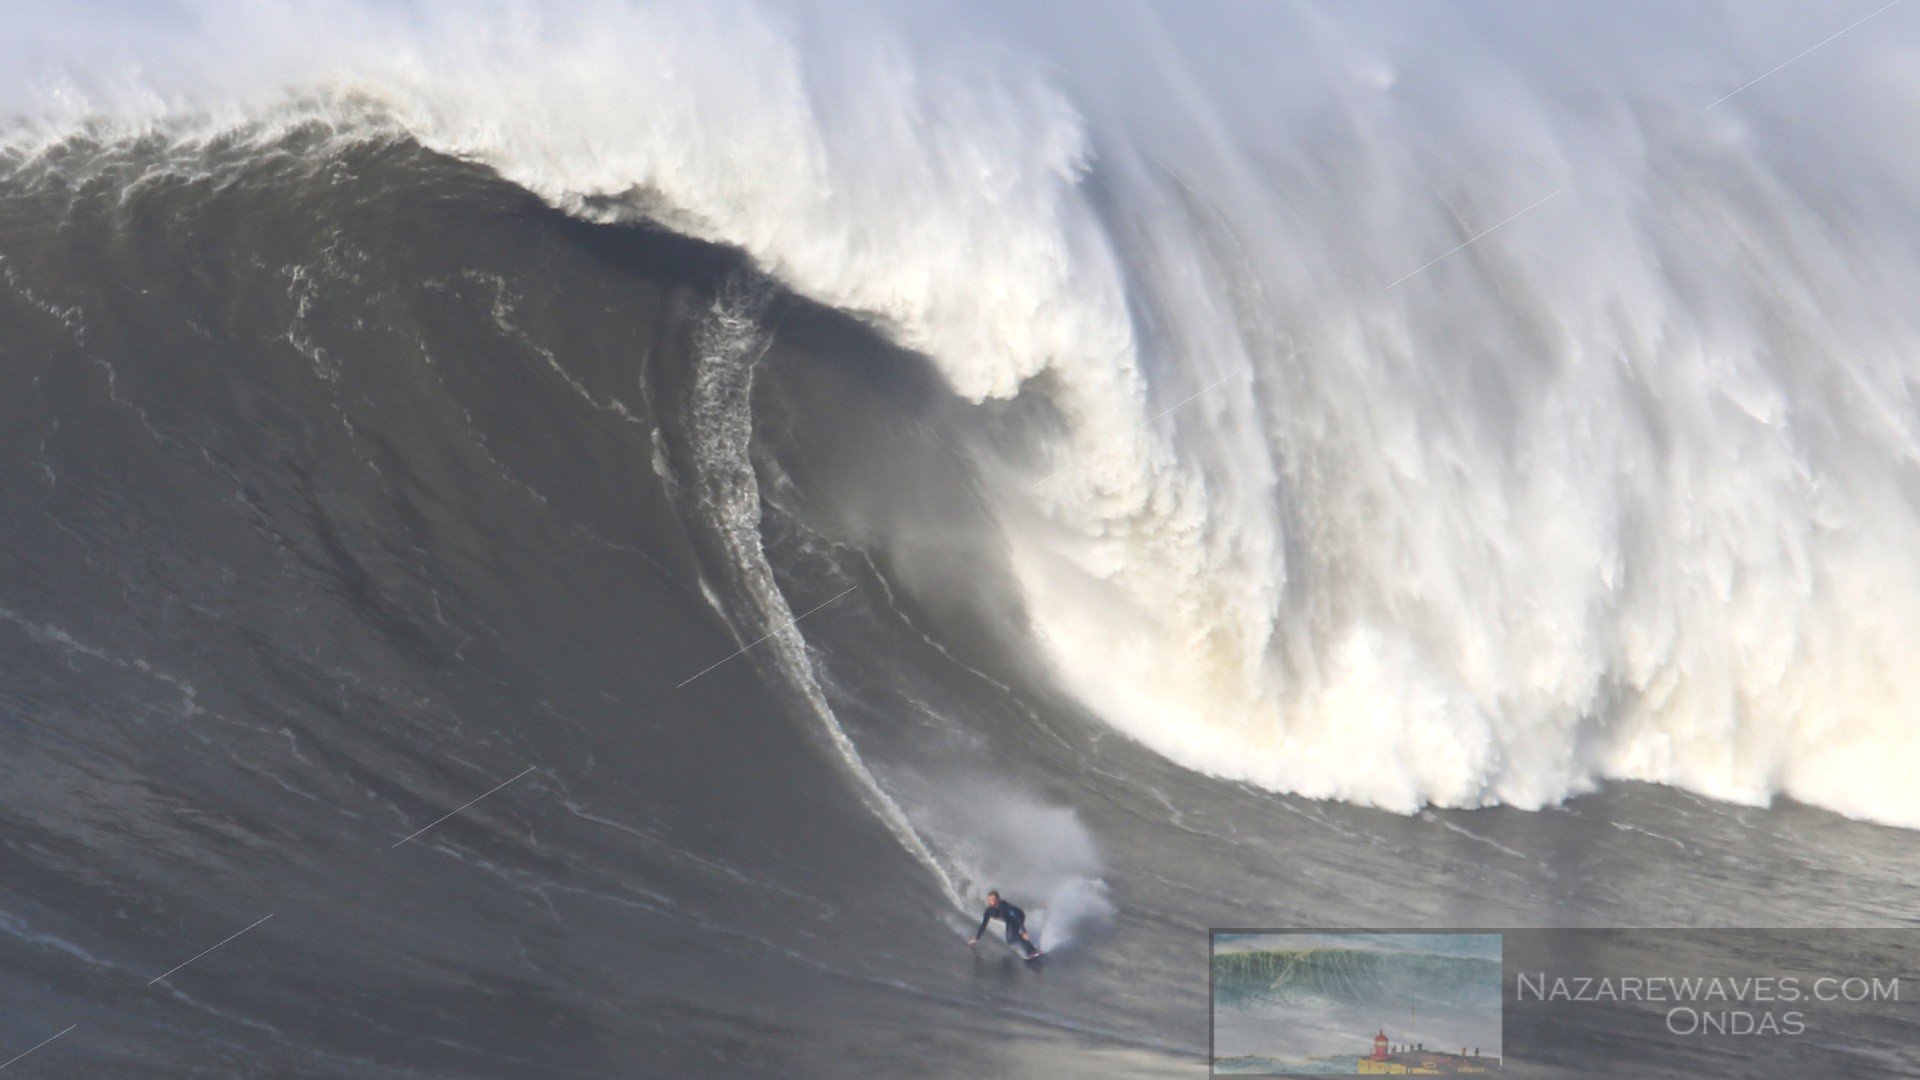 Giant wave at Nazare 19 February 2016